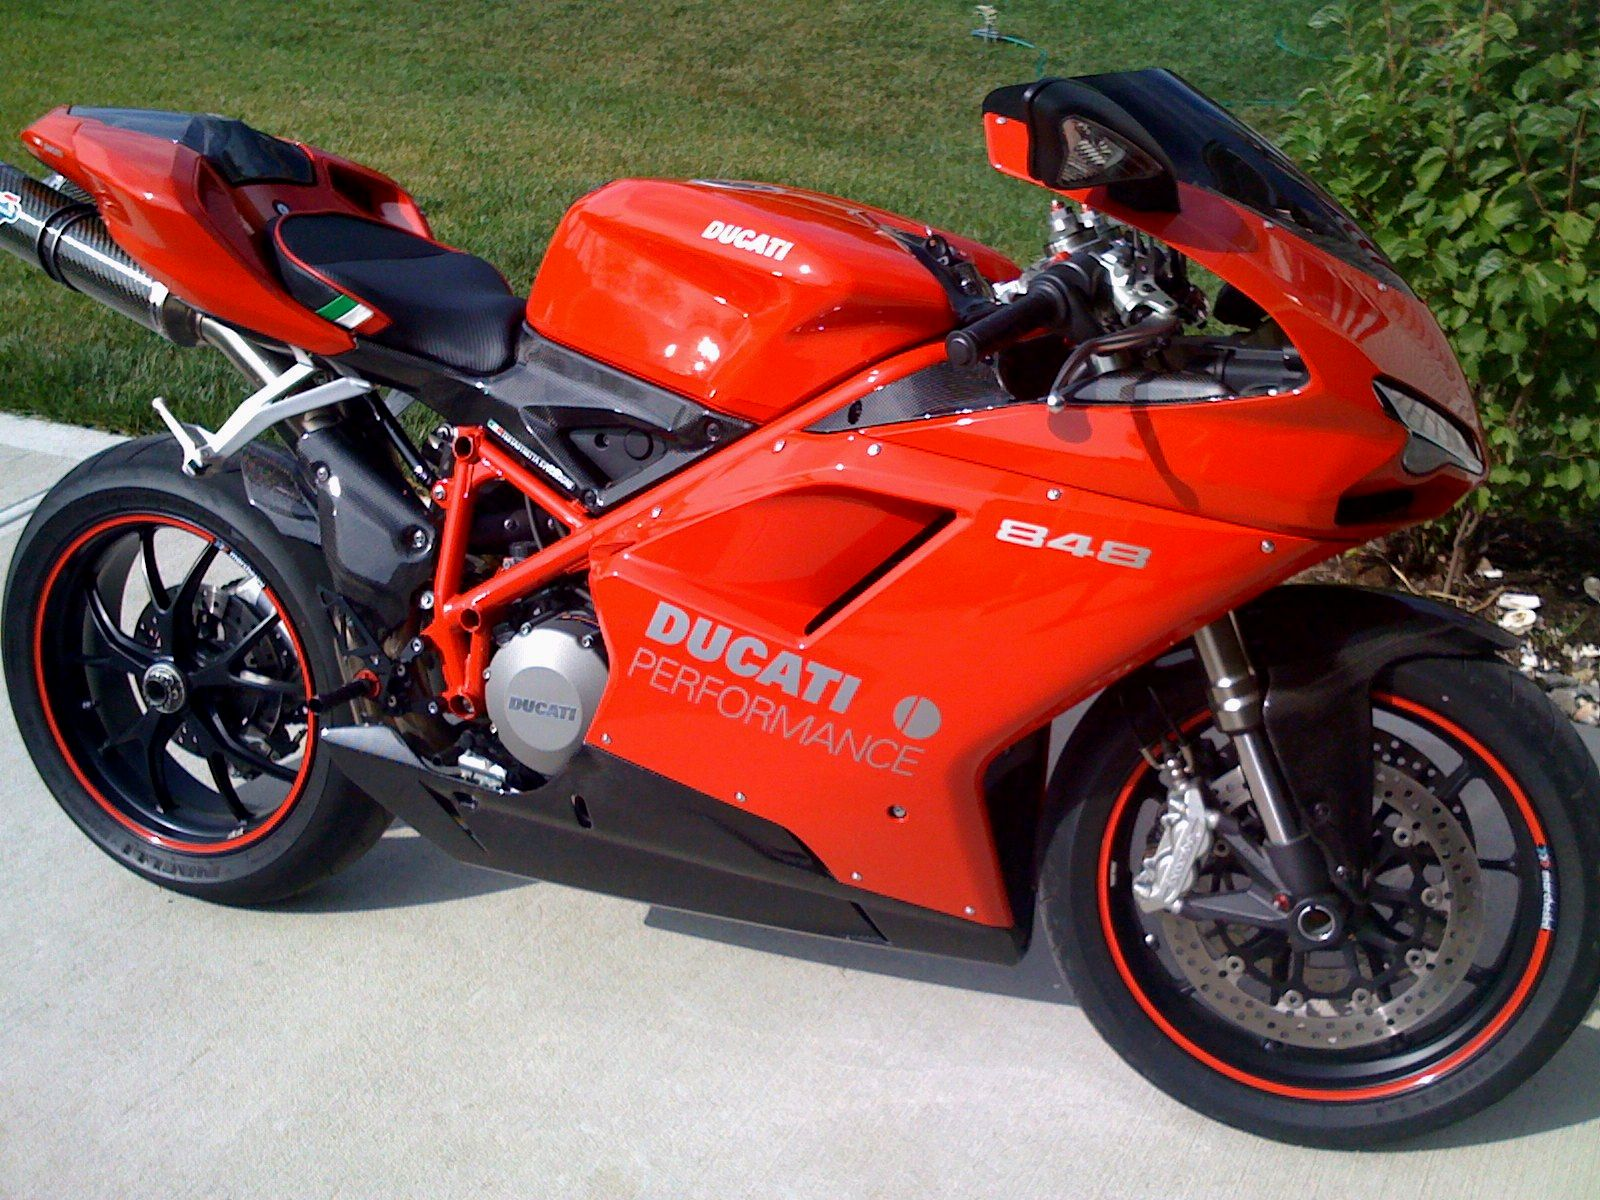 35738d1218998031-how-bout-848-bike-month-new-duc-pics-049.jpg